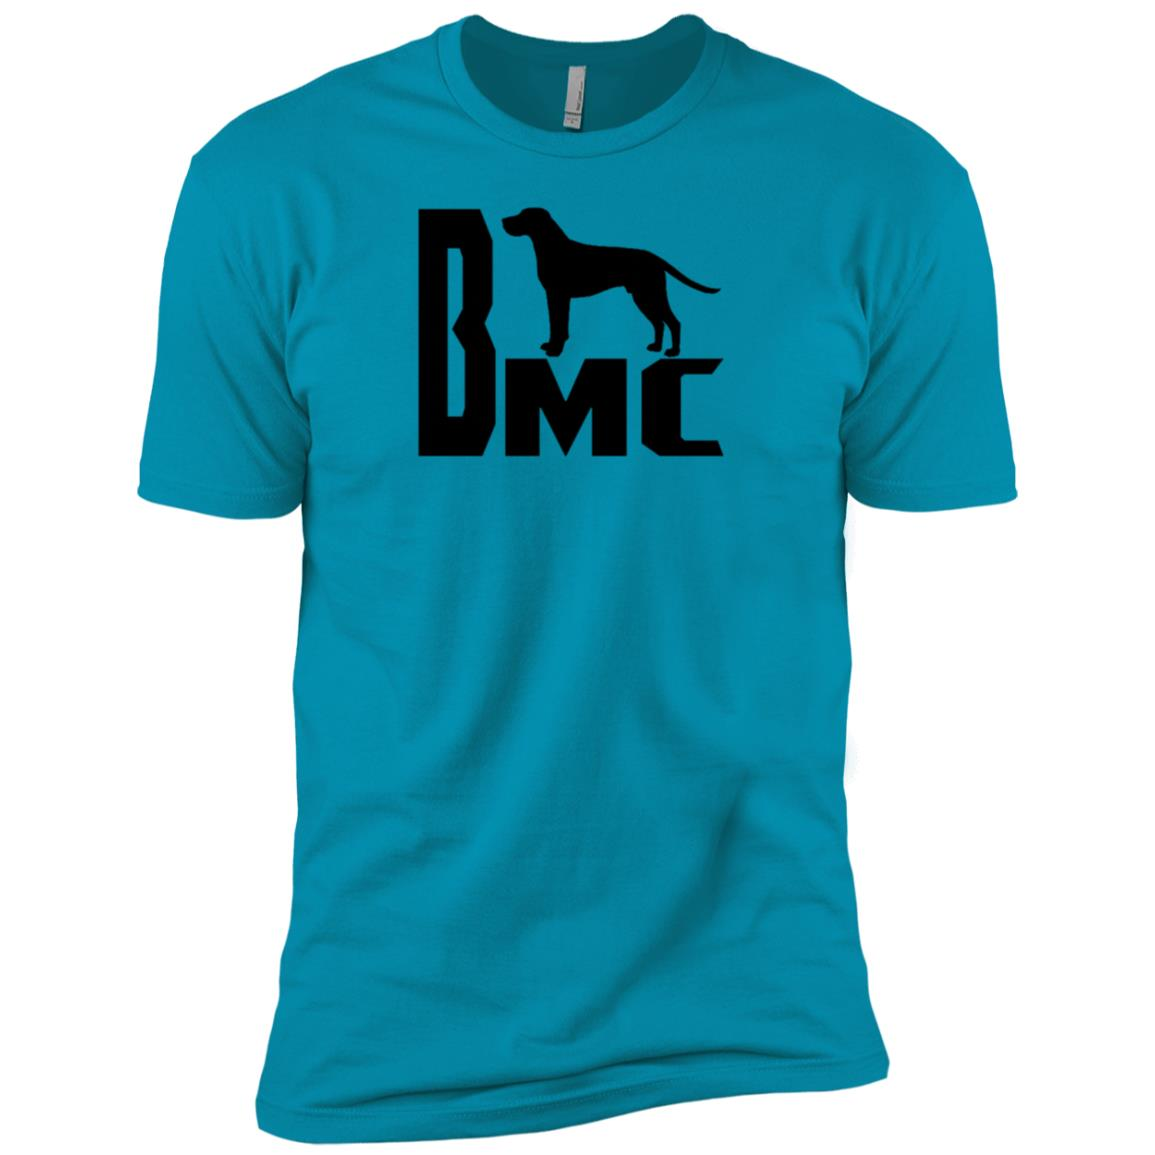 Black Mouth Cur for Hunters, Animal, and Dog Lovers Men Short Sleeve T-Shirt